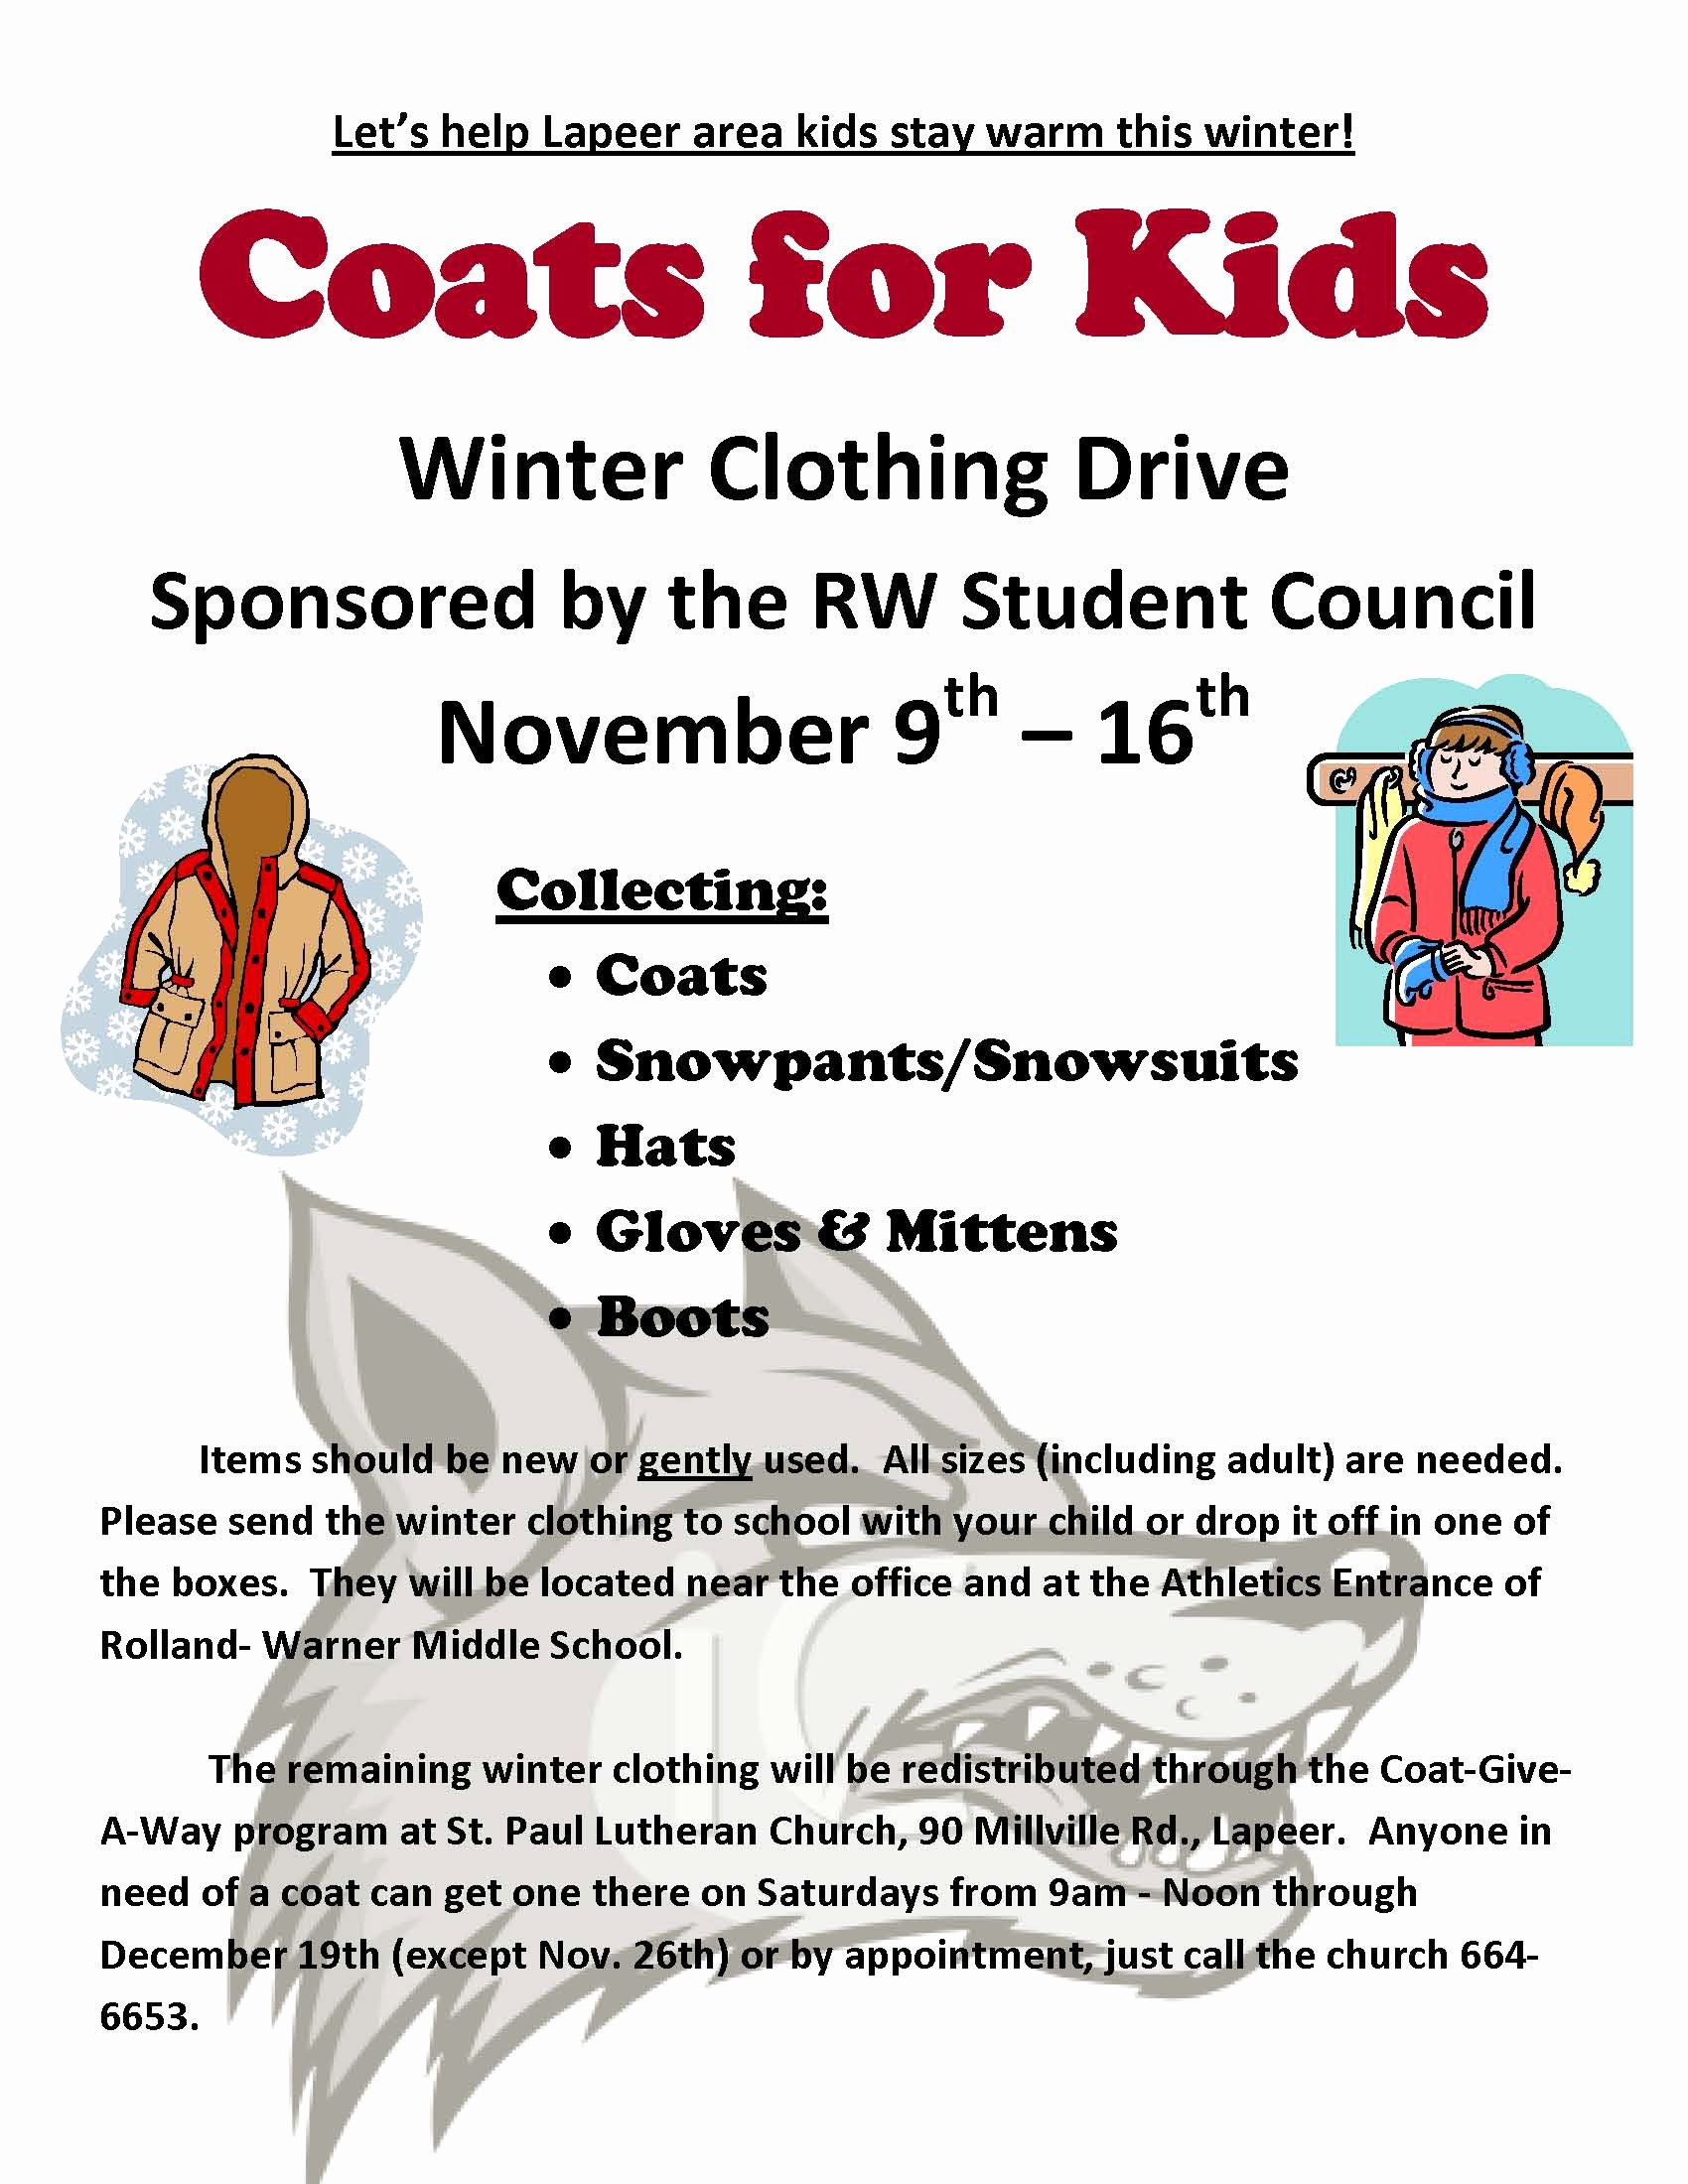 Clothing Drive Flyer Template Inspirational Coats for Kids Winter Clothing Drive Ing November 9 16